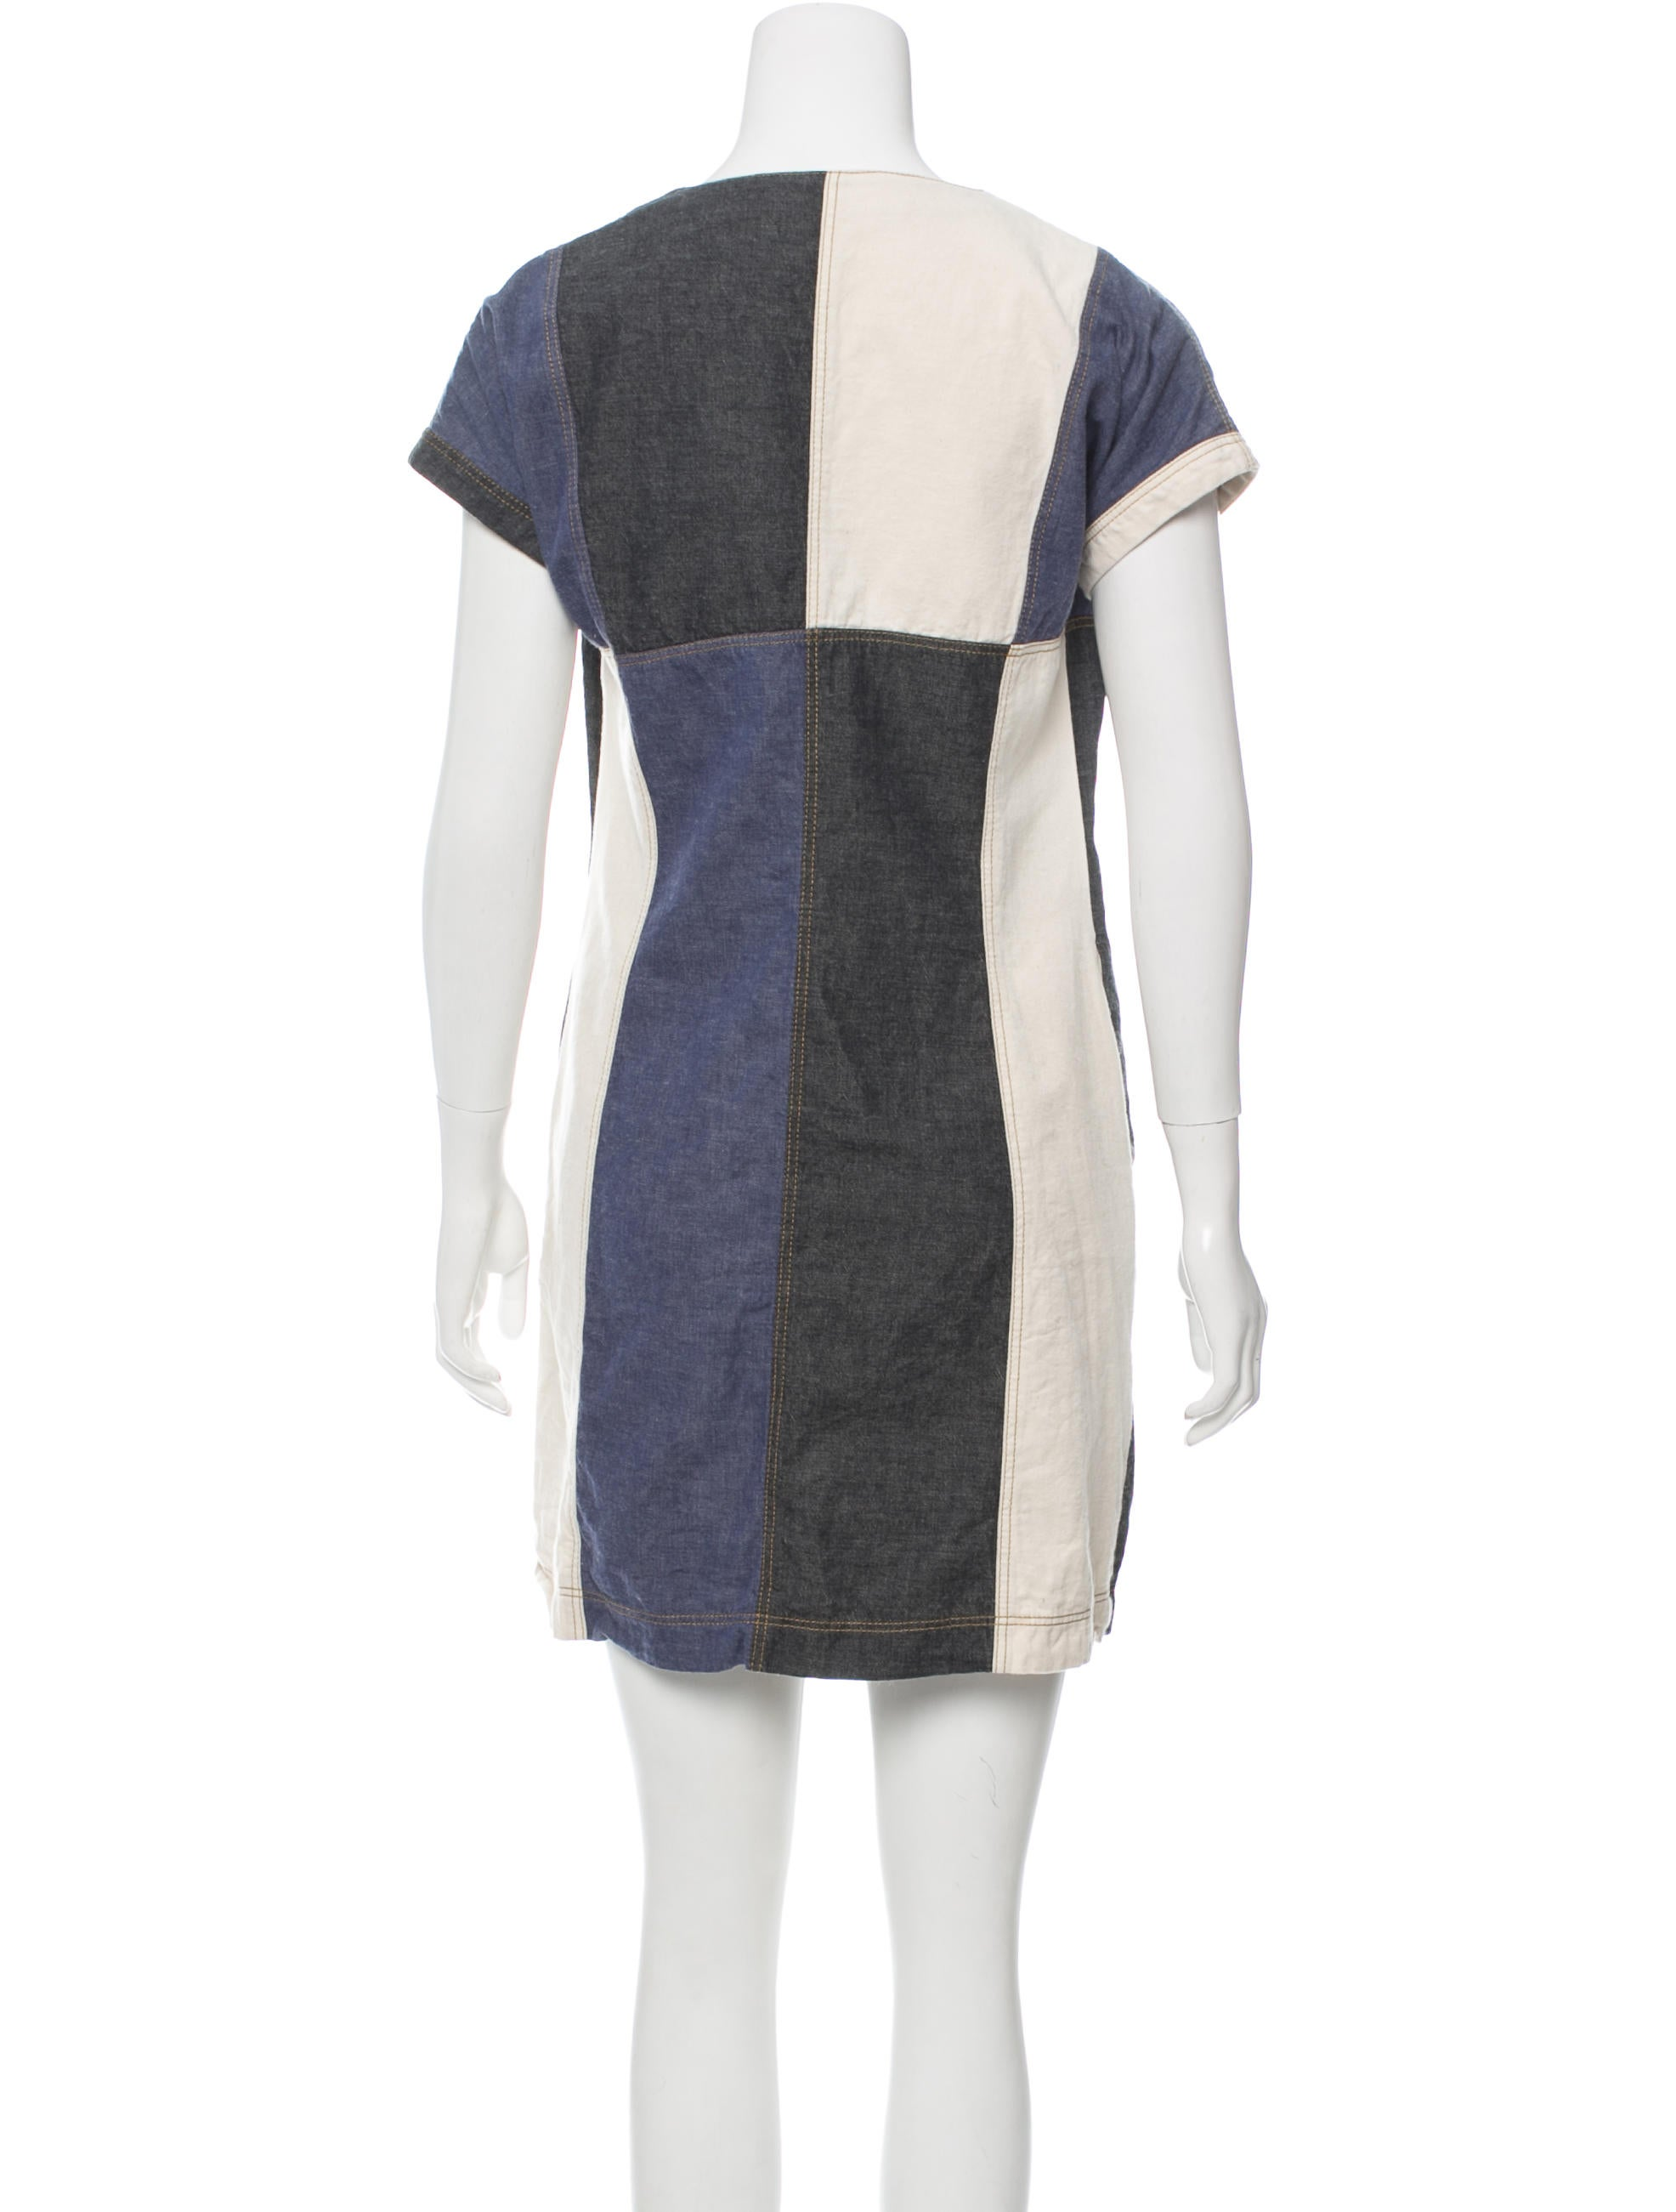 Derek lam 10 crosby colorblock denim dress clothing for Derek lam 10 crosby shirt dress